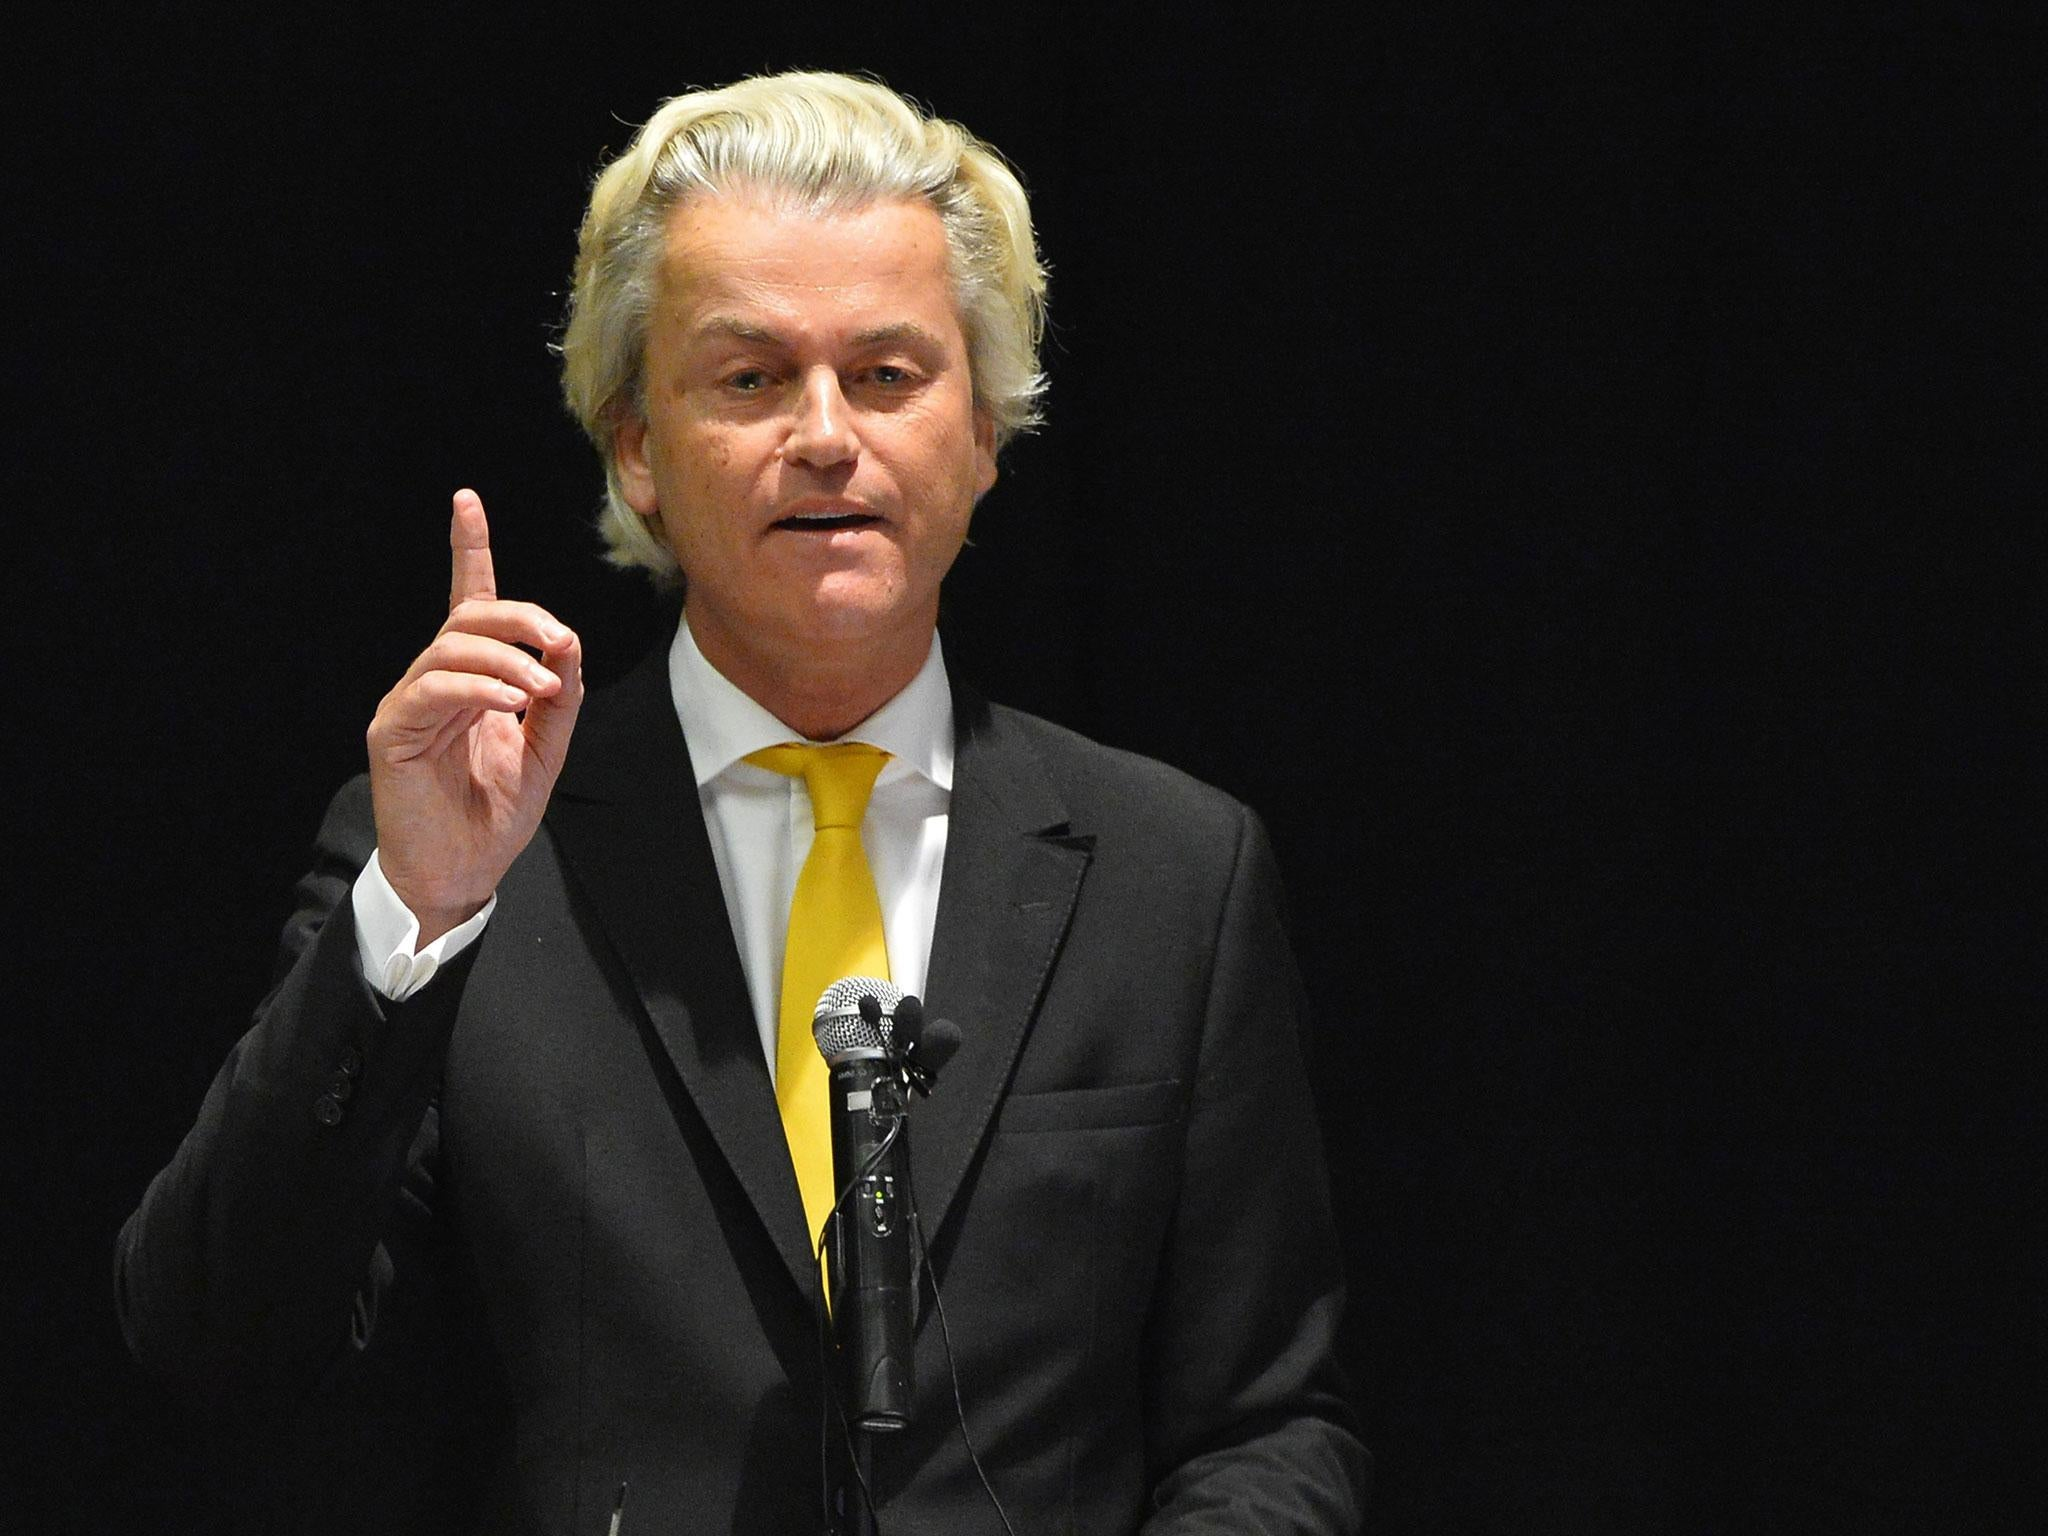 Geert Wilders: The far-right Dutch politician making a career out of discriminating against ...